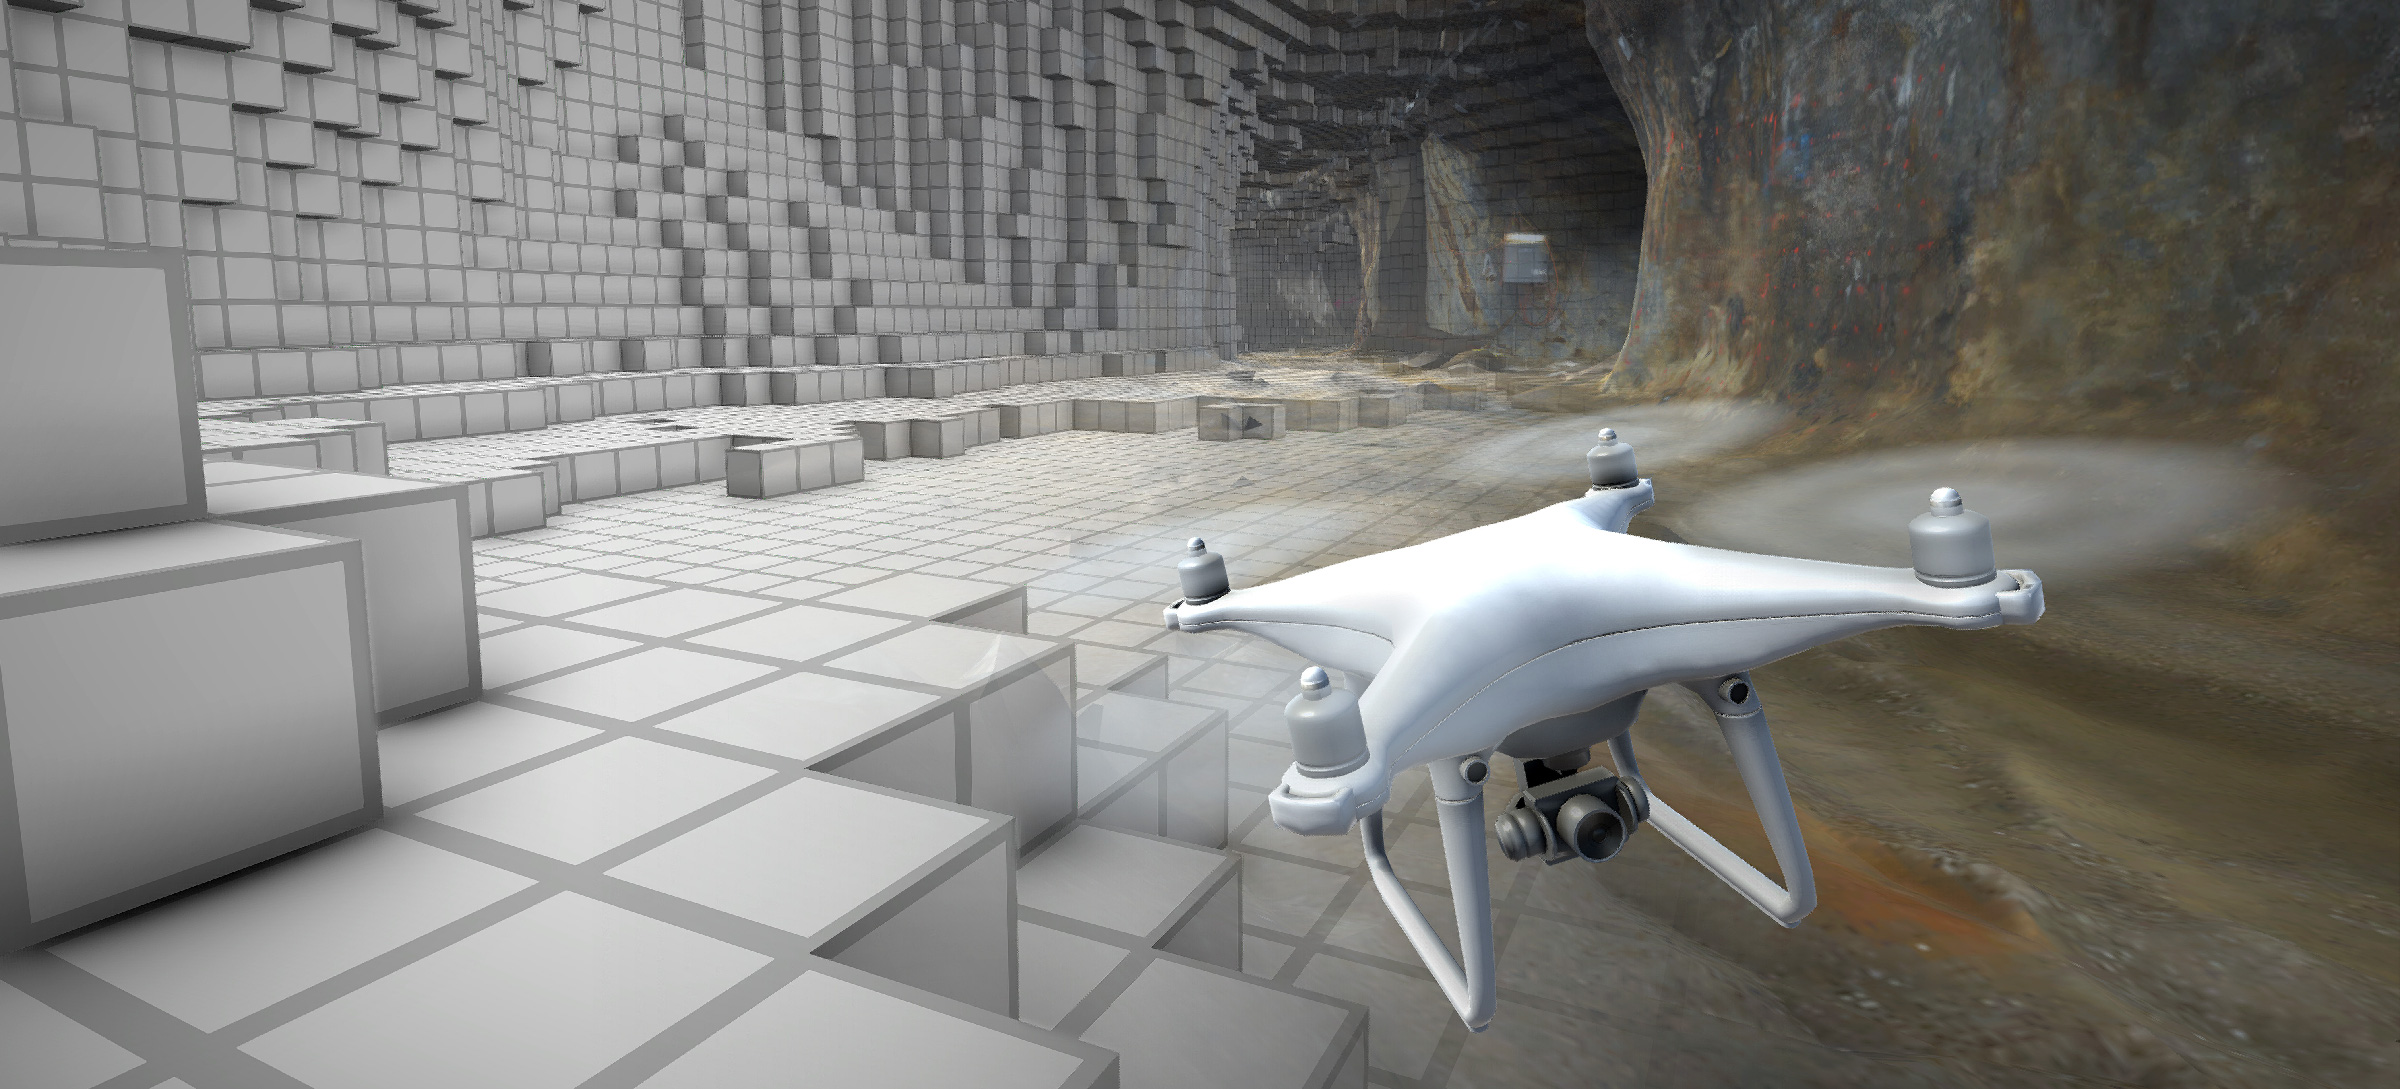 Illustrtaion showing a flying drone with camera digitally mapping cave